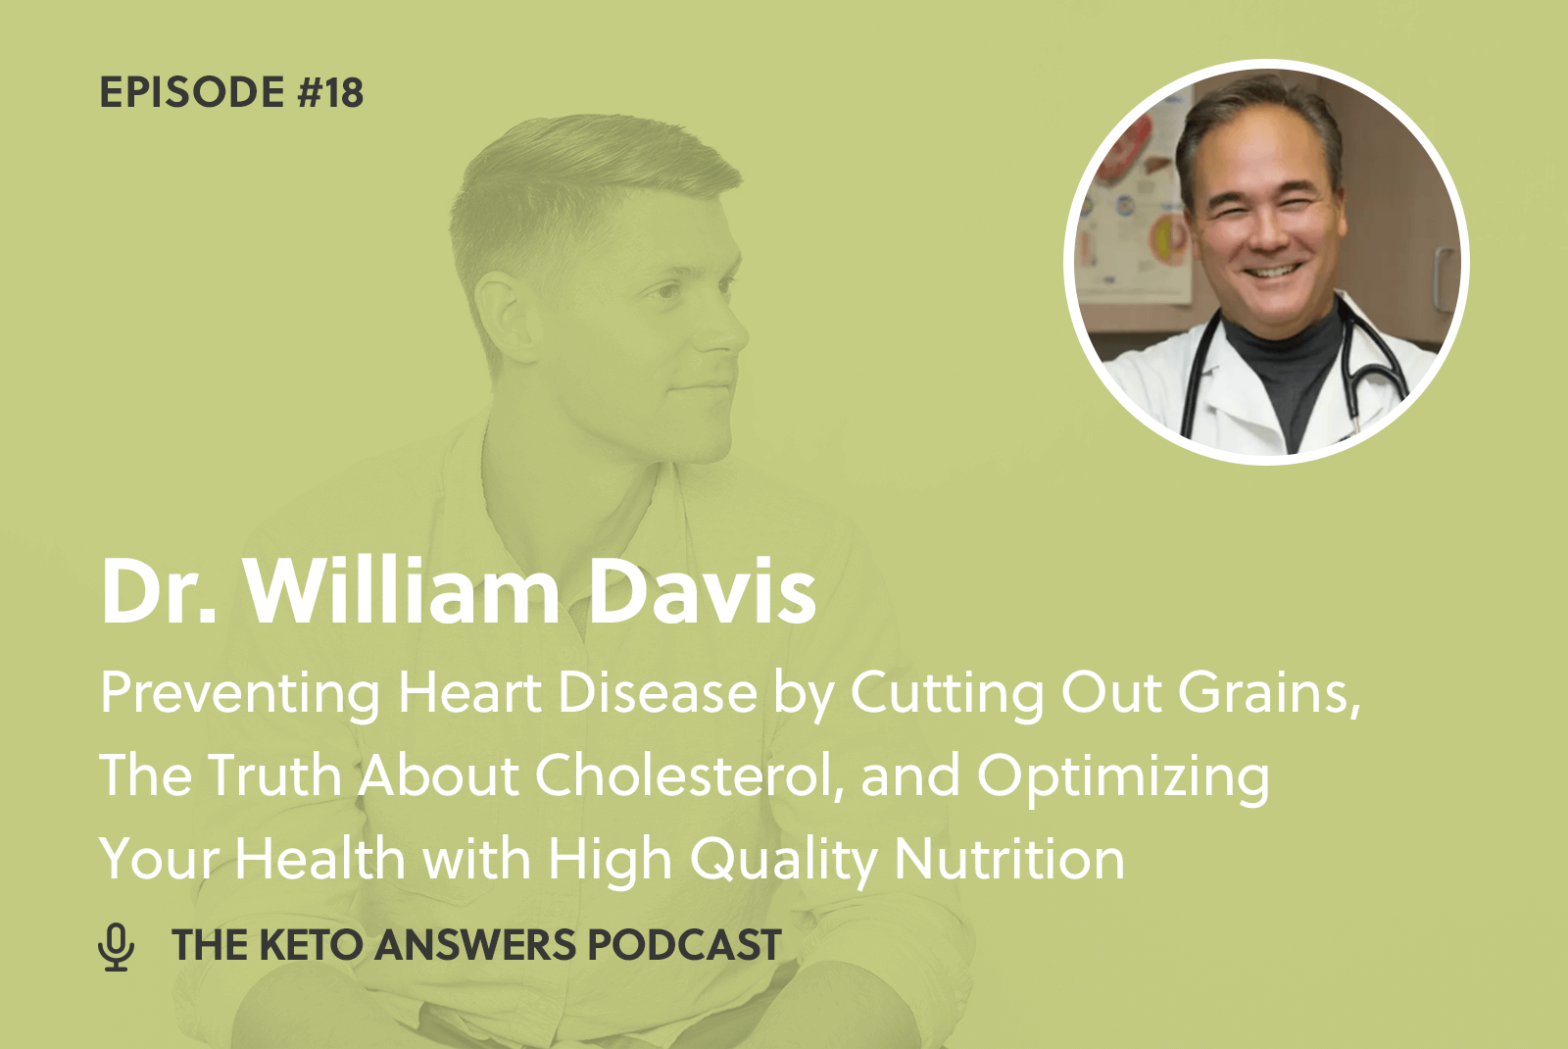 018: Preventing Heart Disease by Cutting Out Grains, The Truth About Cholesterol, and Optimizing Your Health with High Quality Nutrition —  Dr. William Davis